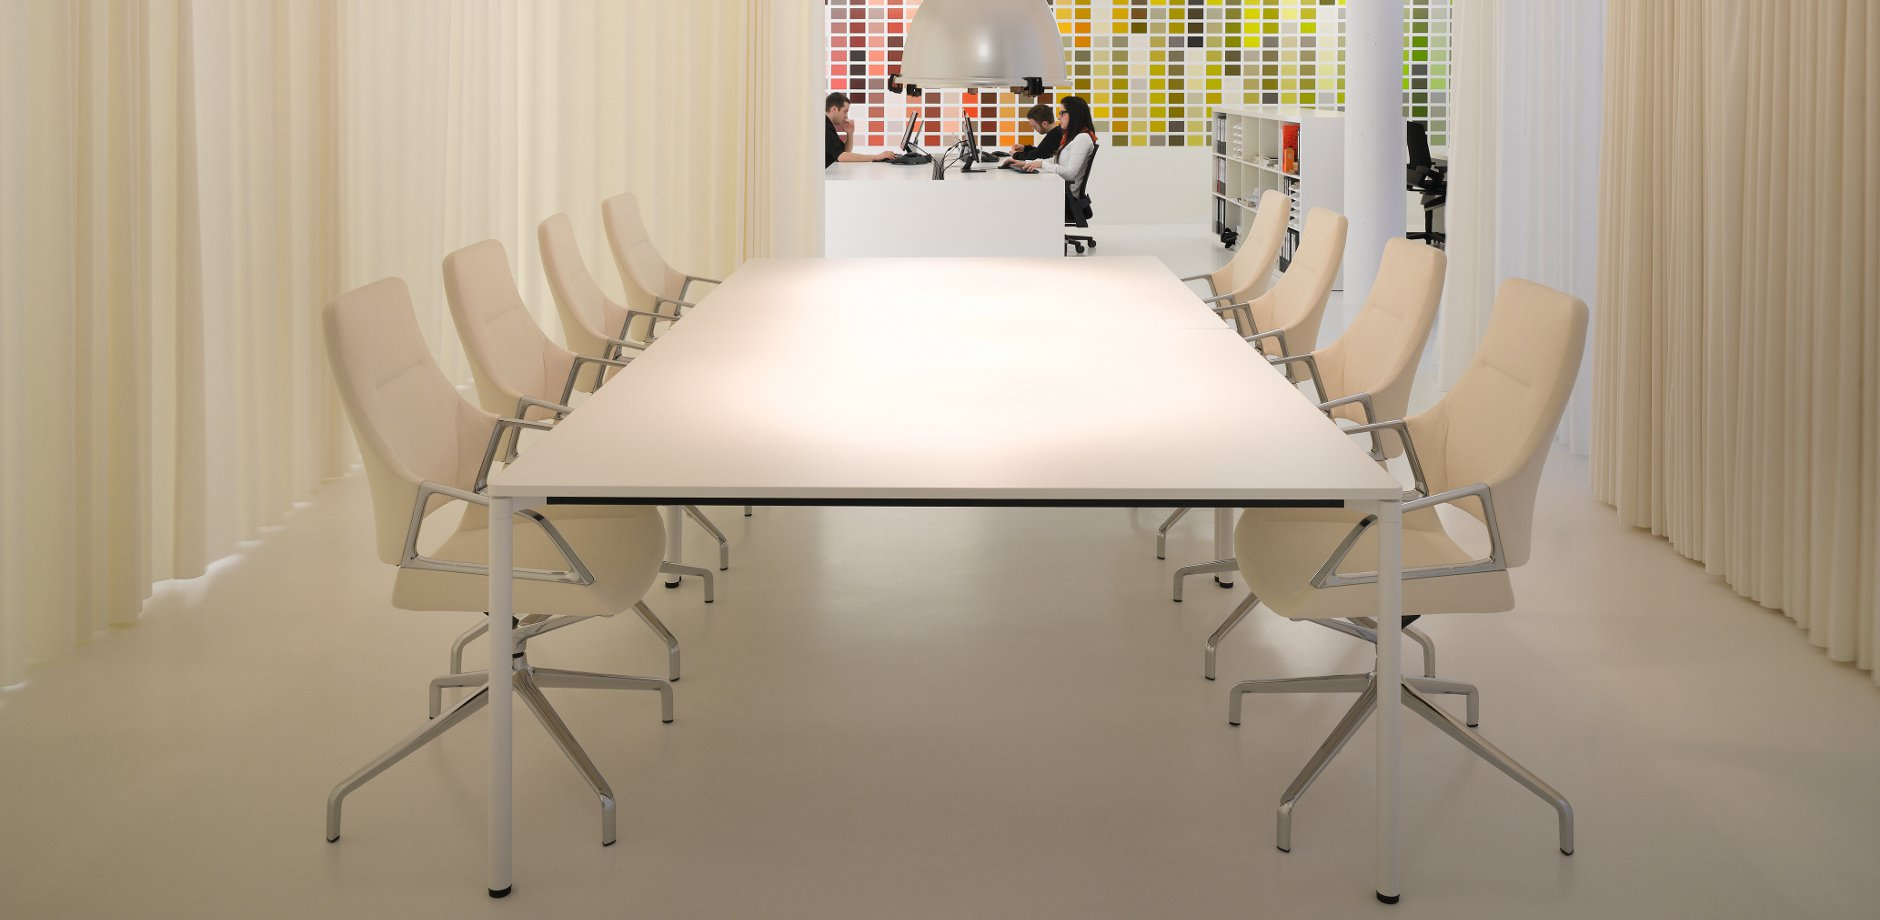 Ahrens Grabenhorst Architekten, Graph conference table and Concentra conference table, Wilkhahn